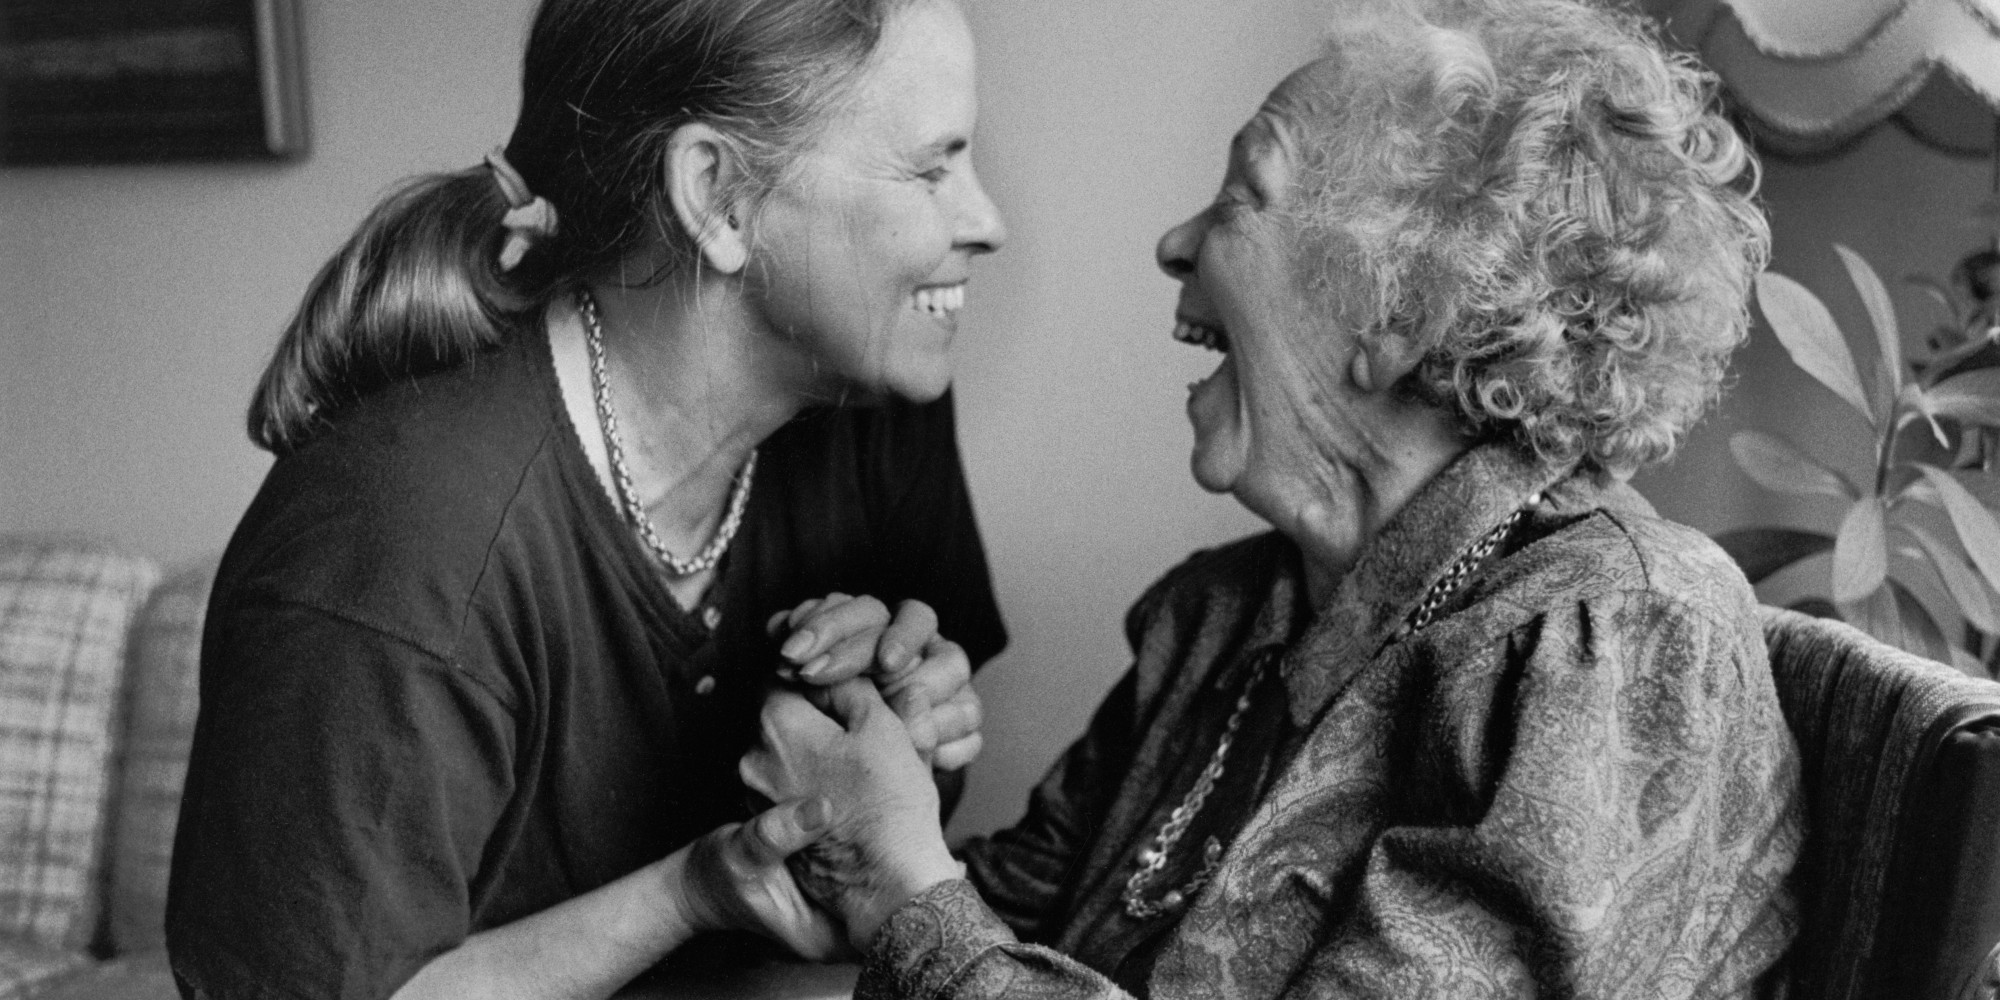 dementia alzheimer s disease and people There is often confusion and misunderstanding surrounding the terms alzheimer's disease and dementia though the two are certainly related there are significant differences that people should .